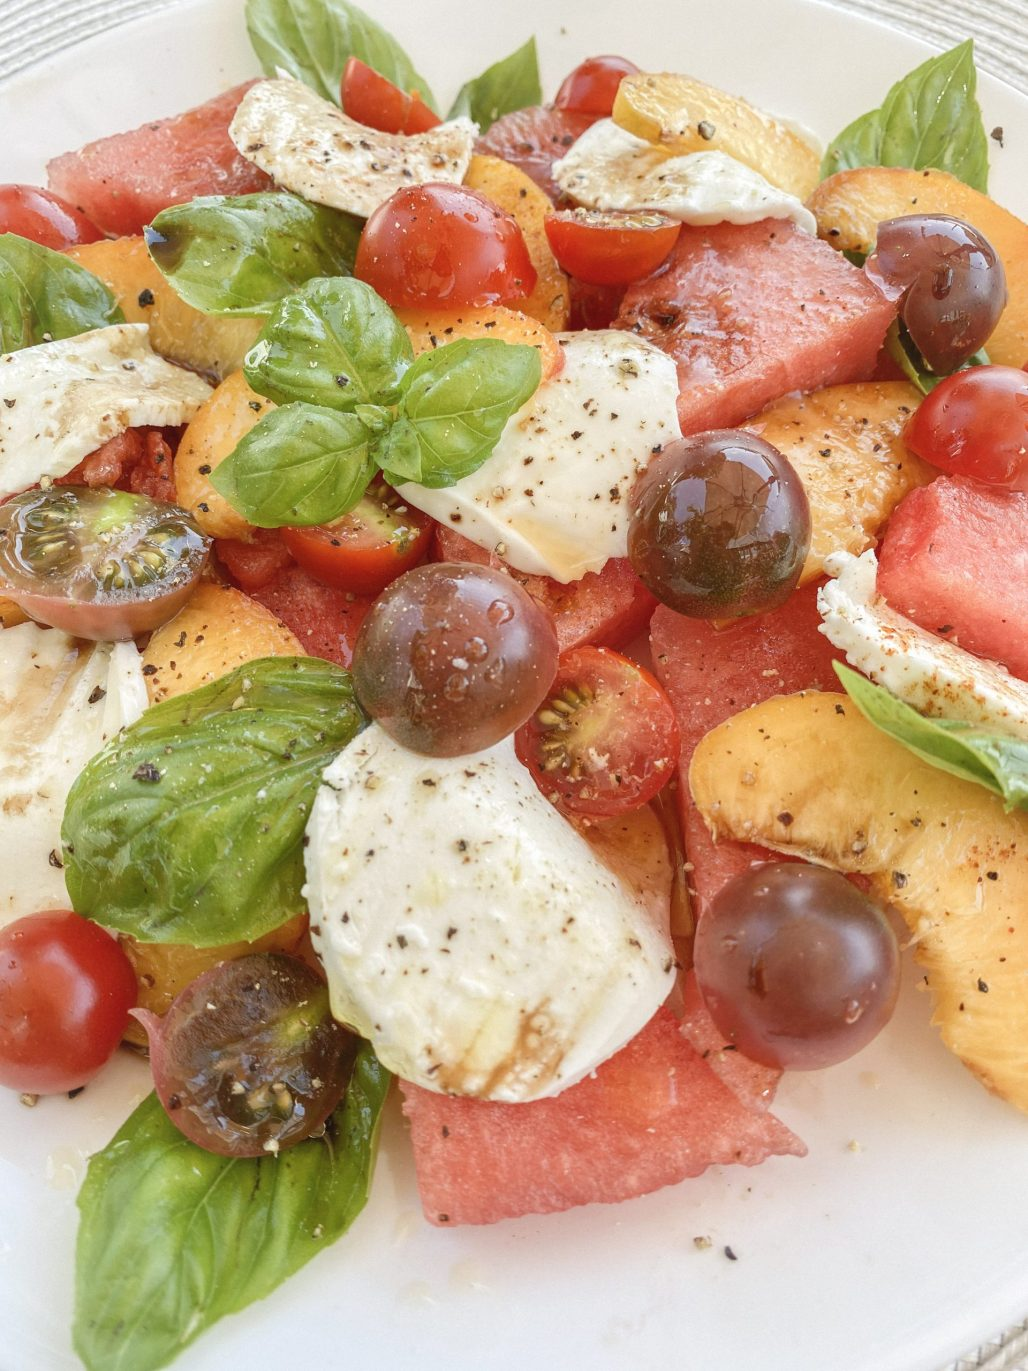 Watermelon, Peach + Tomato Caprese Salad || Dreamery EventsWatermelon, Peach + Tomato Caprese Salad ... the only meal you'll want this Summer! || Dreamery Events